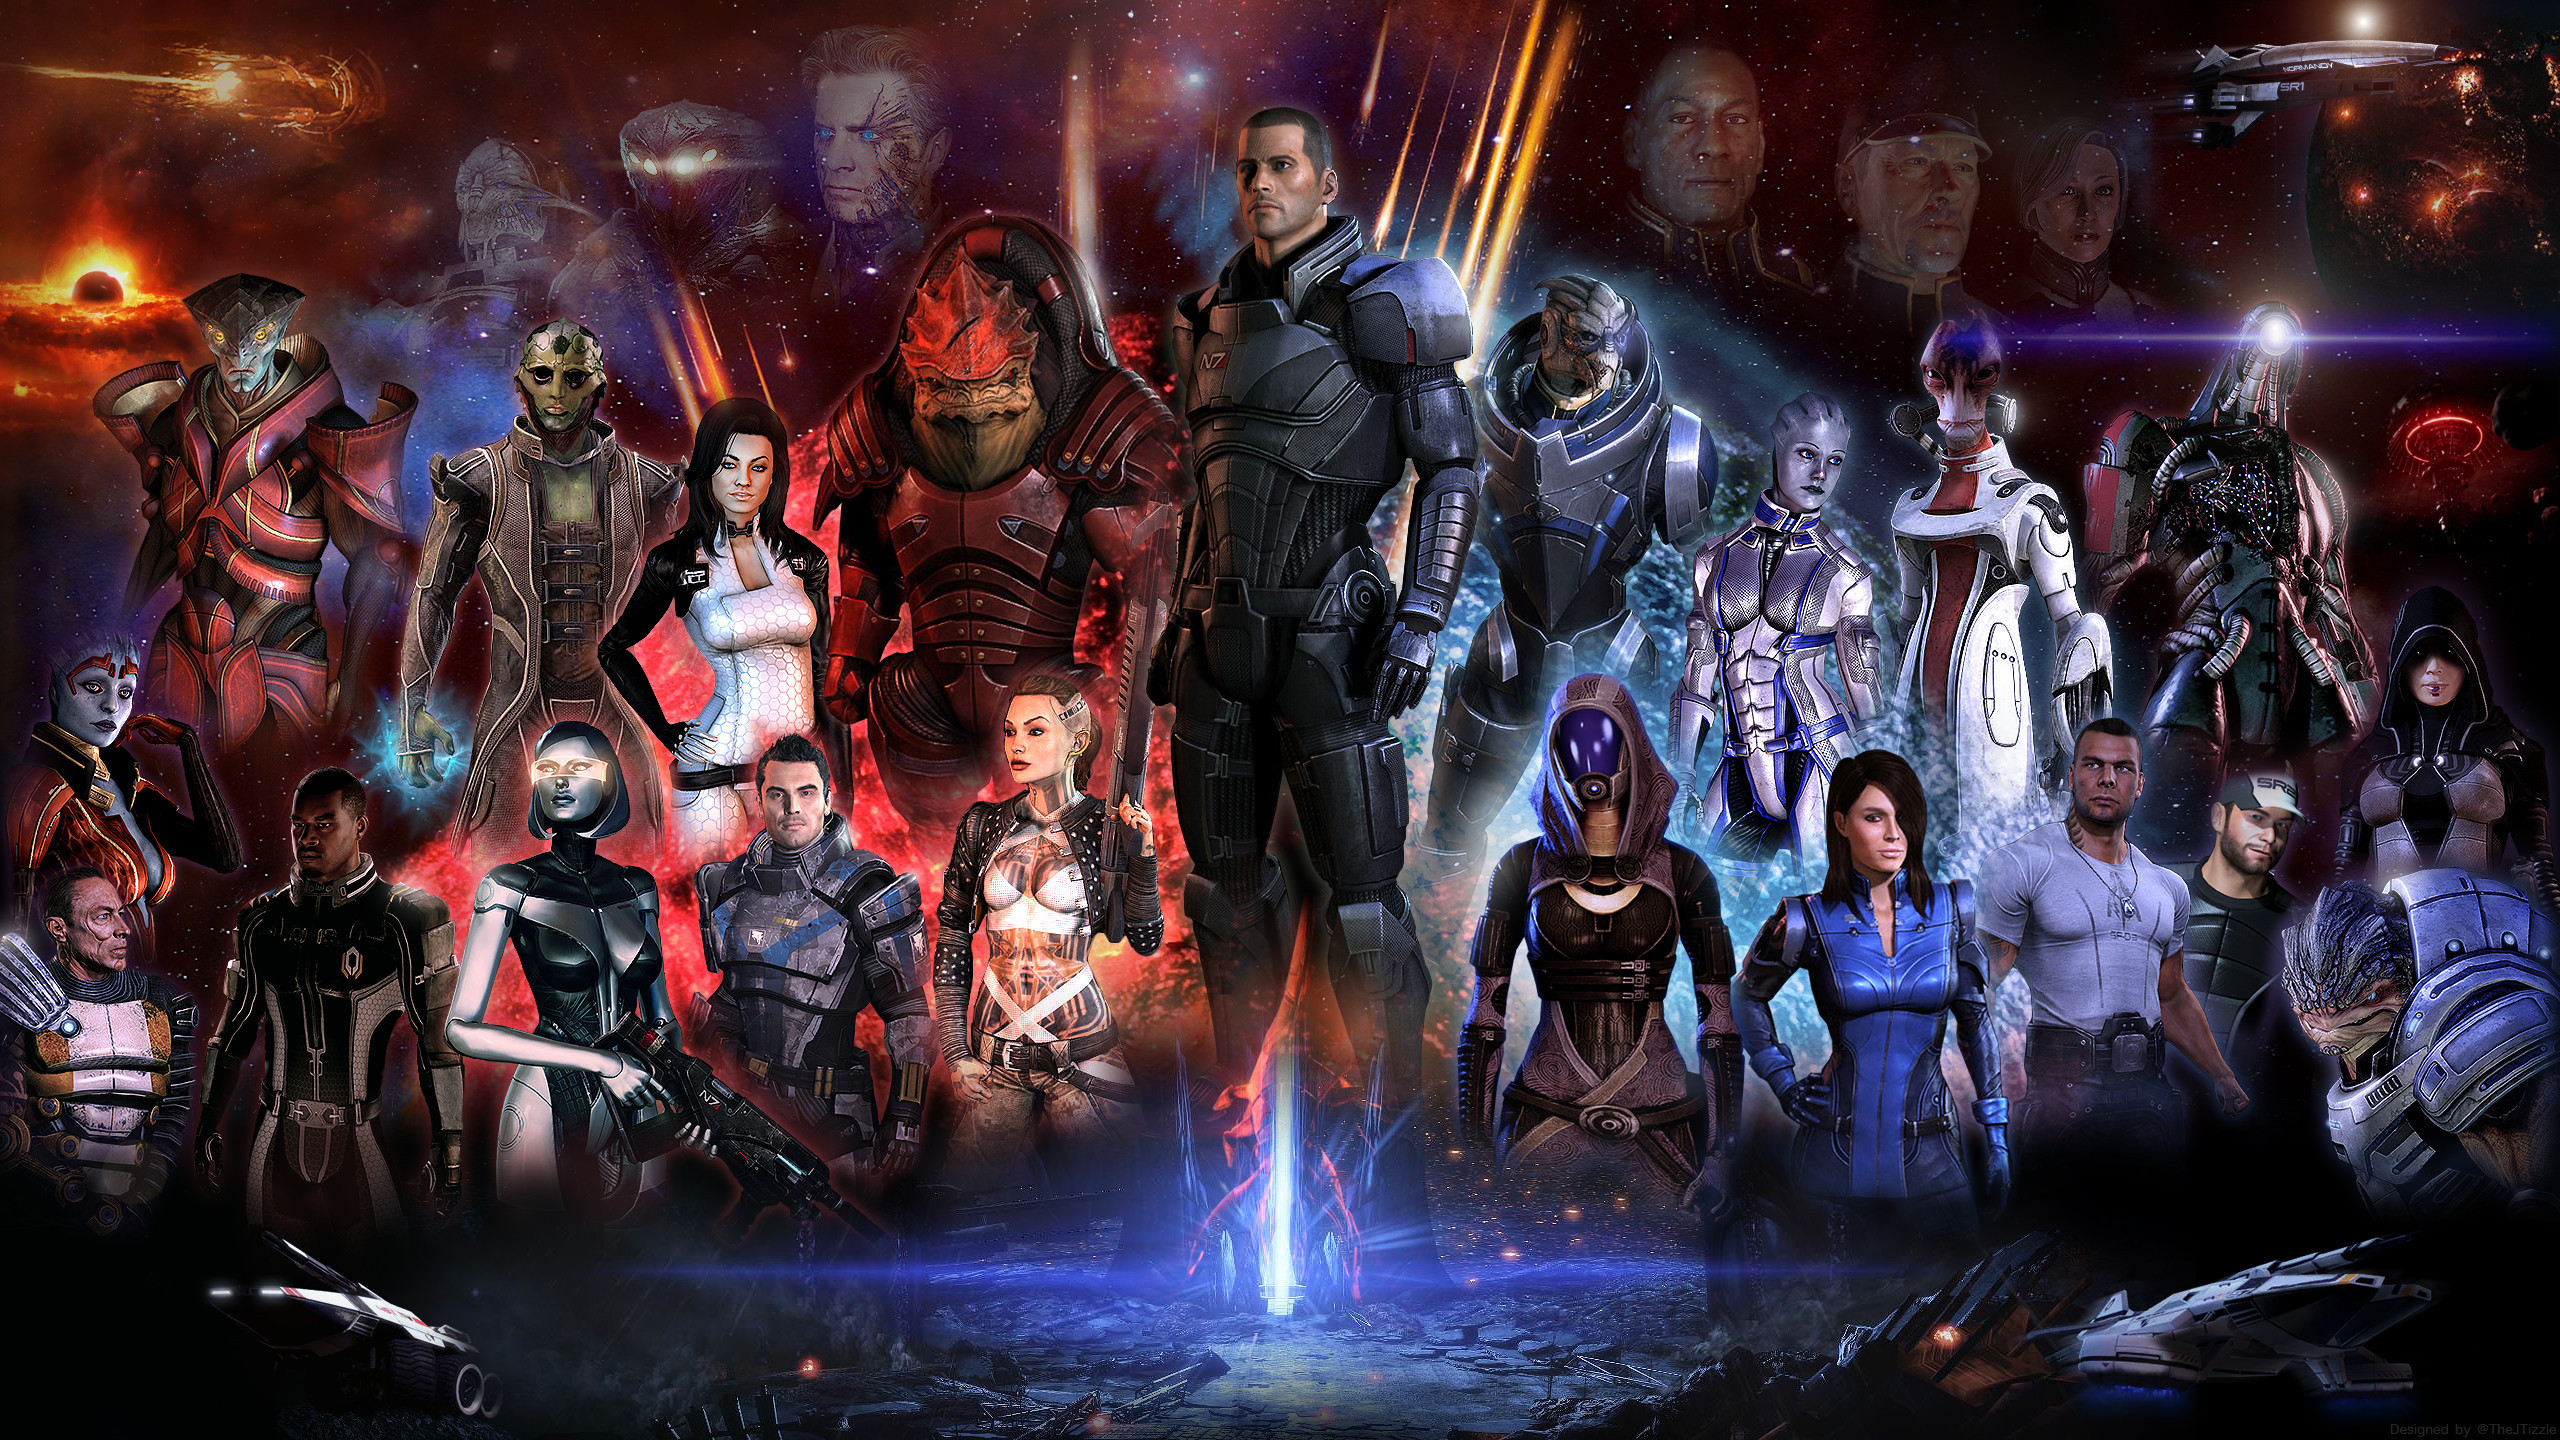 401 Mass Effect HD Wallpapers | Backgrounds - Wallpaper Abyss